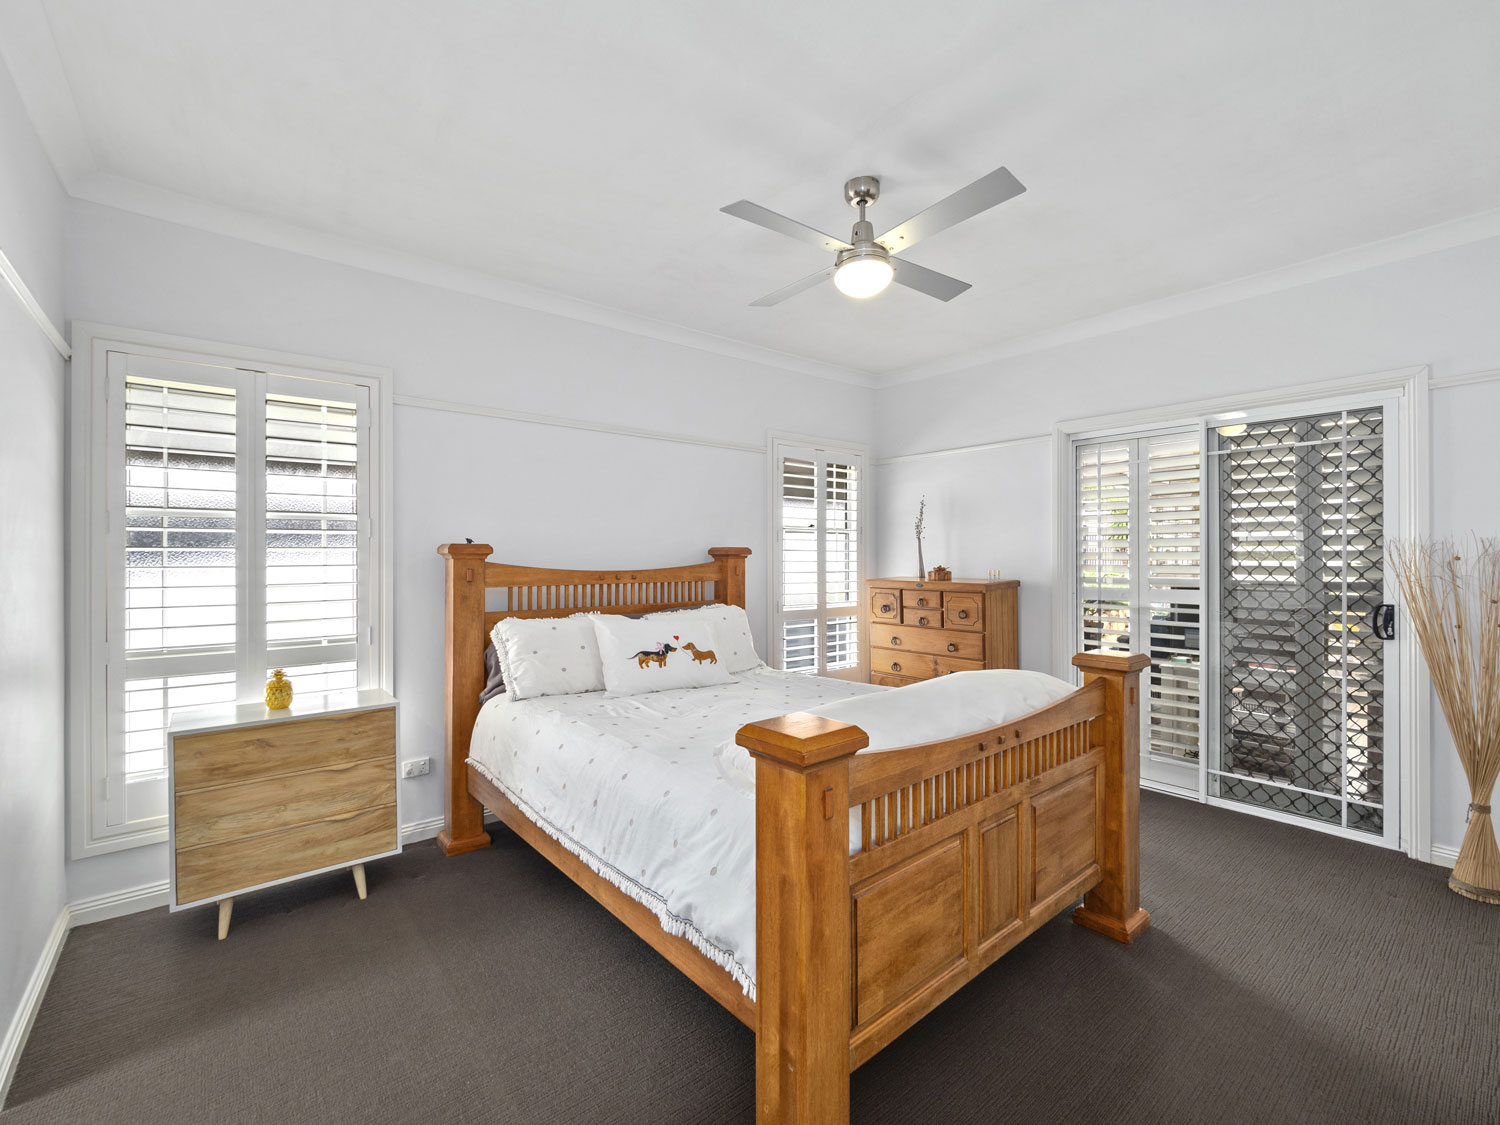 The master bedroom of a home for sale at Eaton's Hill